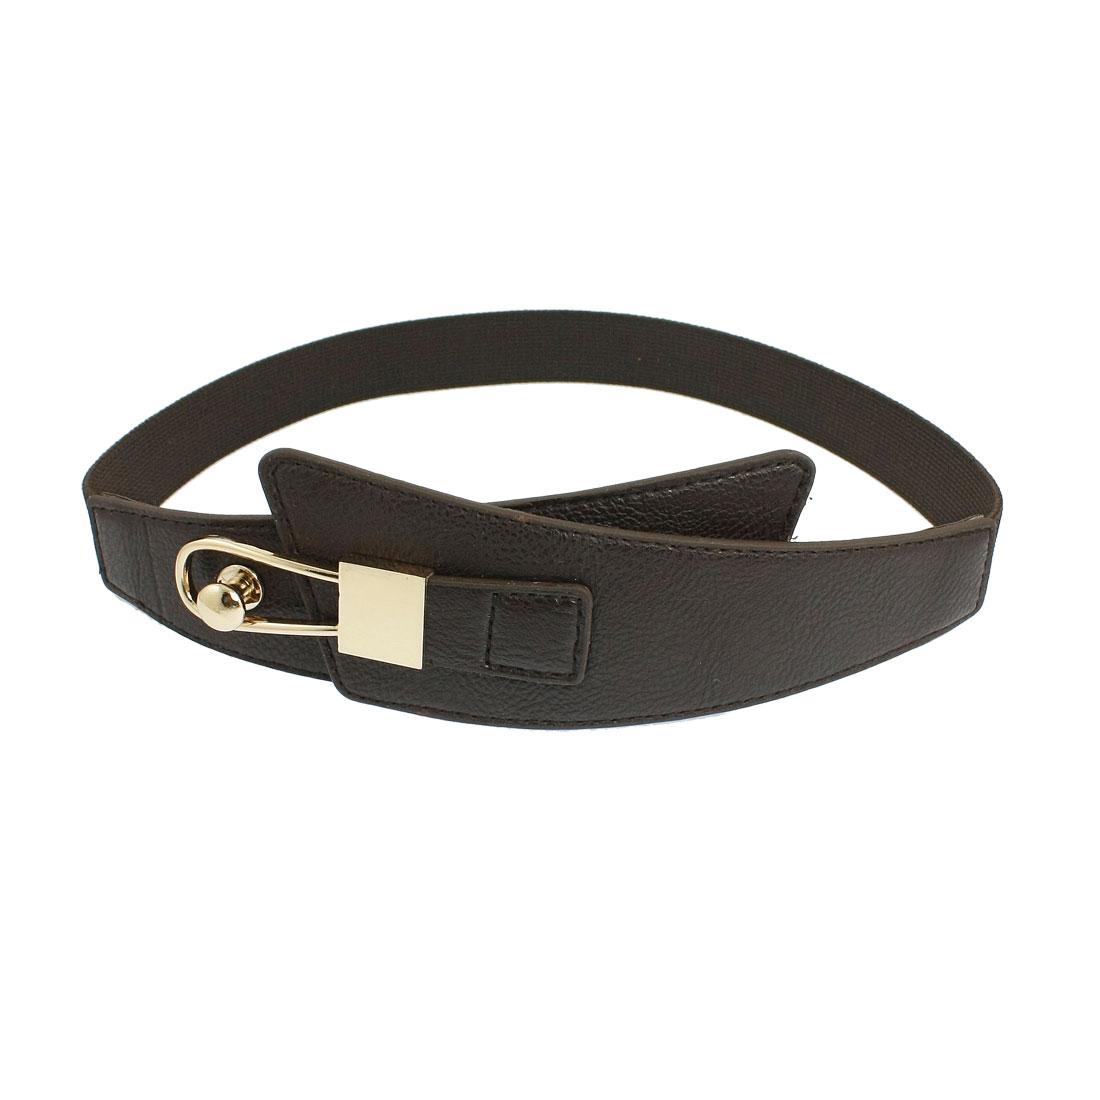 Metal Lock Shape Buckle Textured Coffee Color Stretchy Waist Belt Band for Women